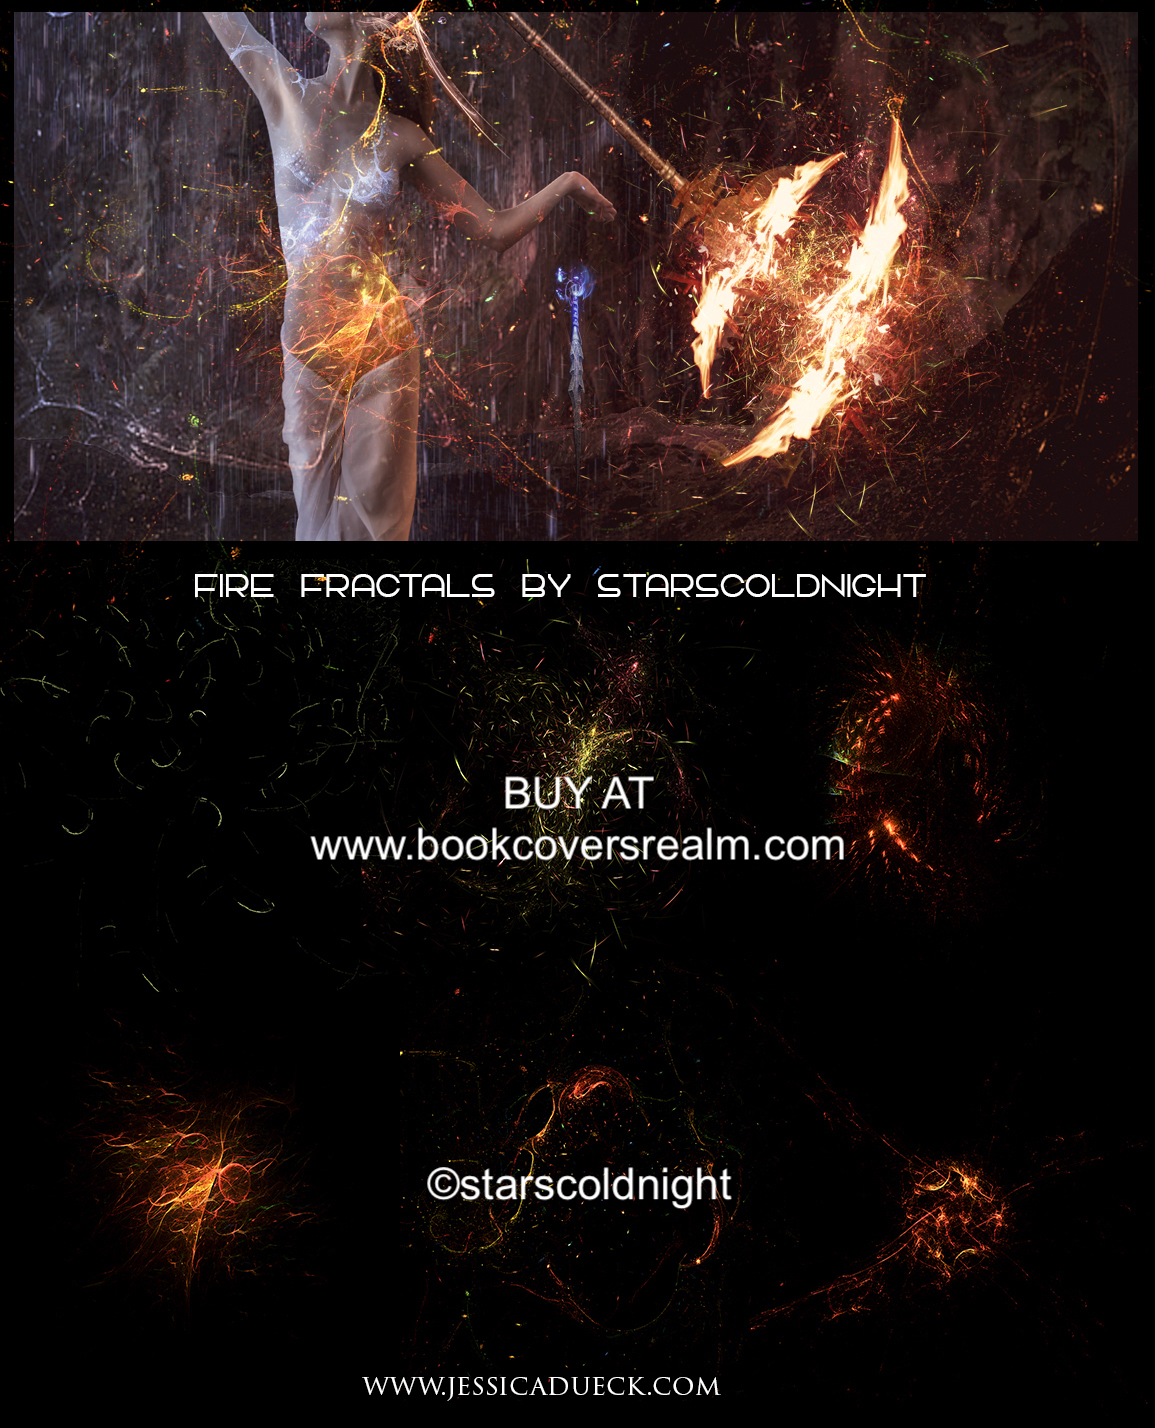 Fire sparks fractals by starscoldnight